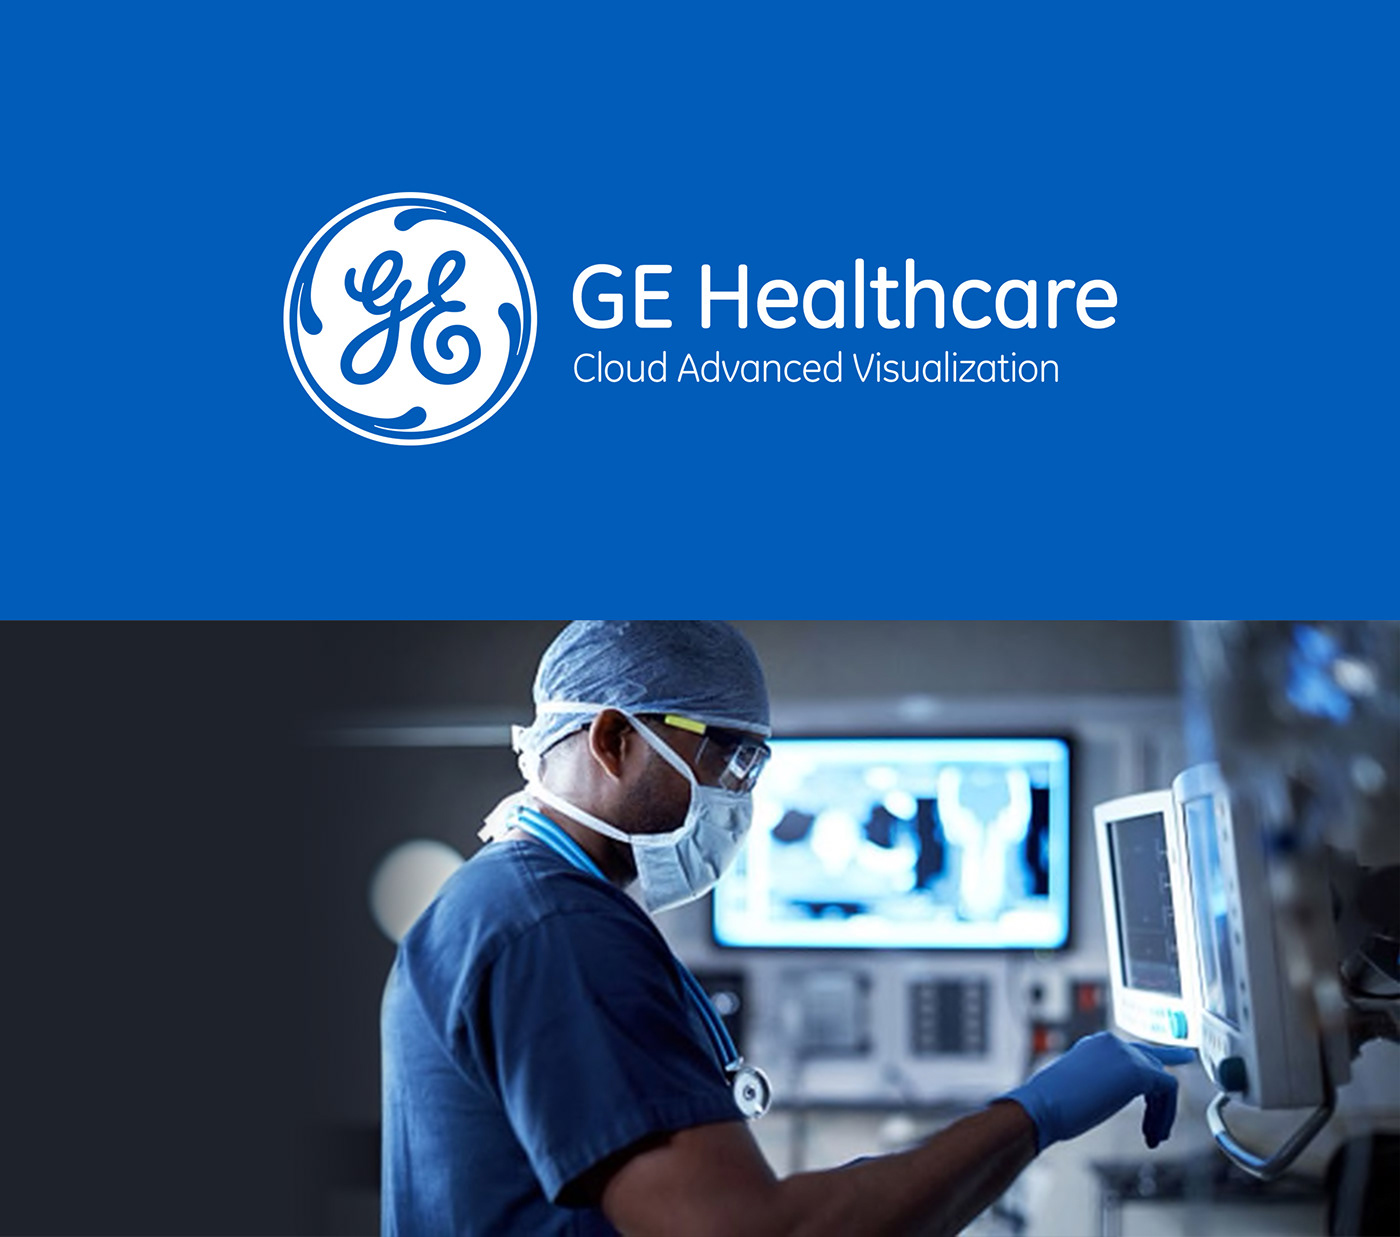 general electric Imagery medical